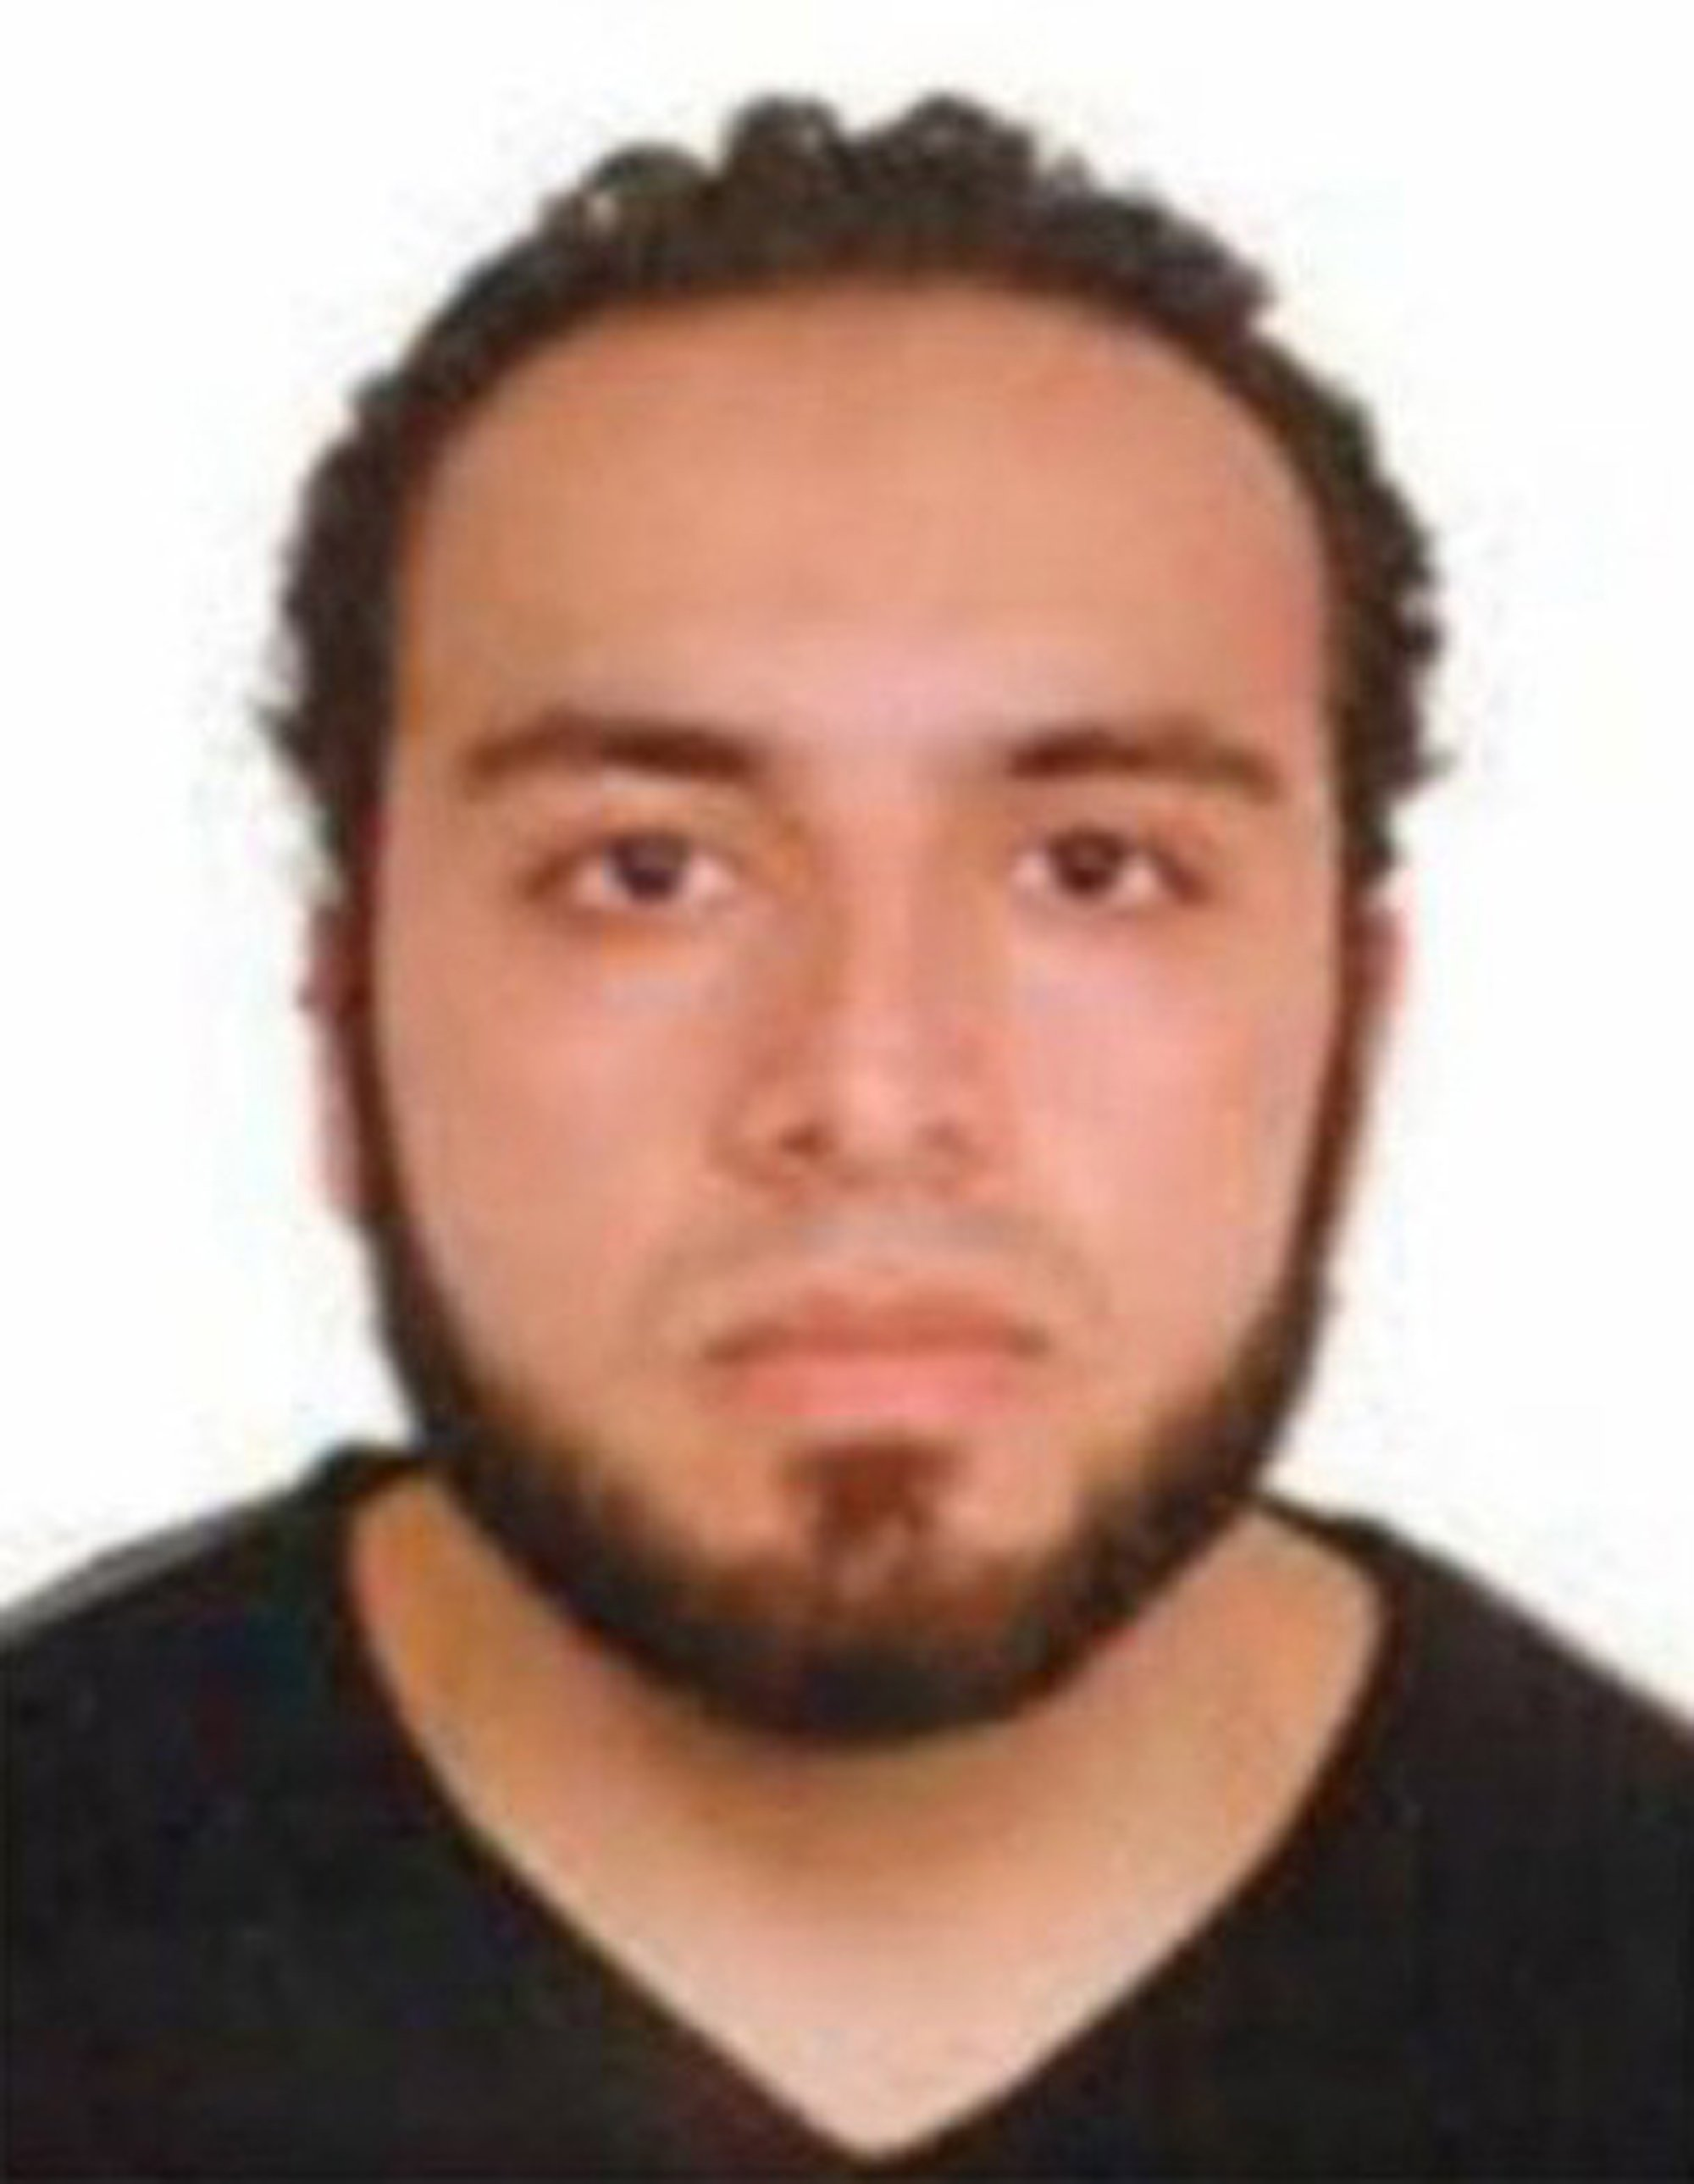 Federal Bureau of Investigation issues poster for suspect sought in connection with NYC bombing